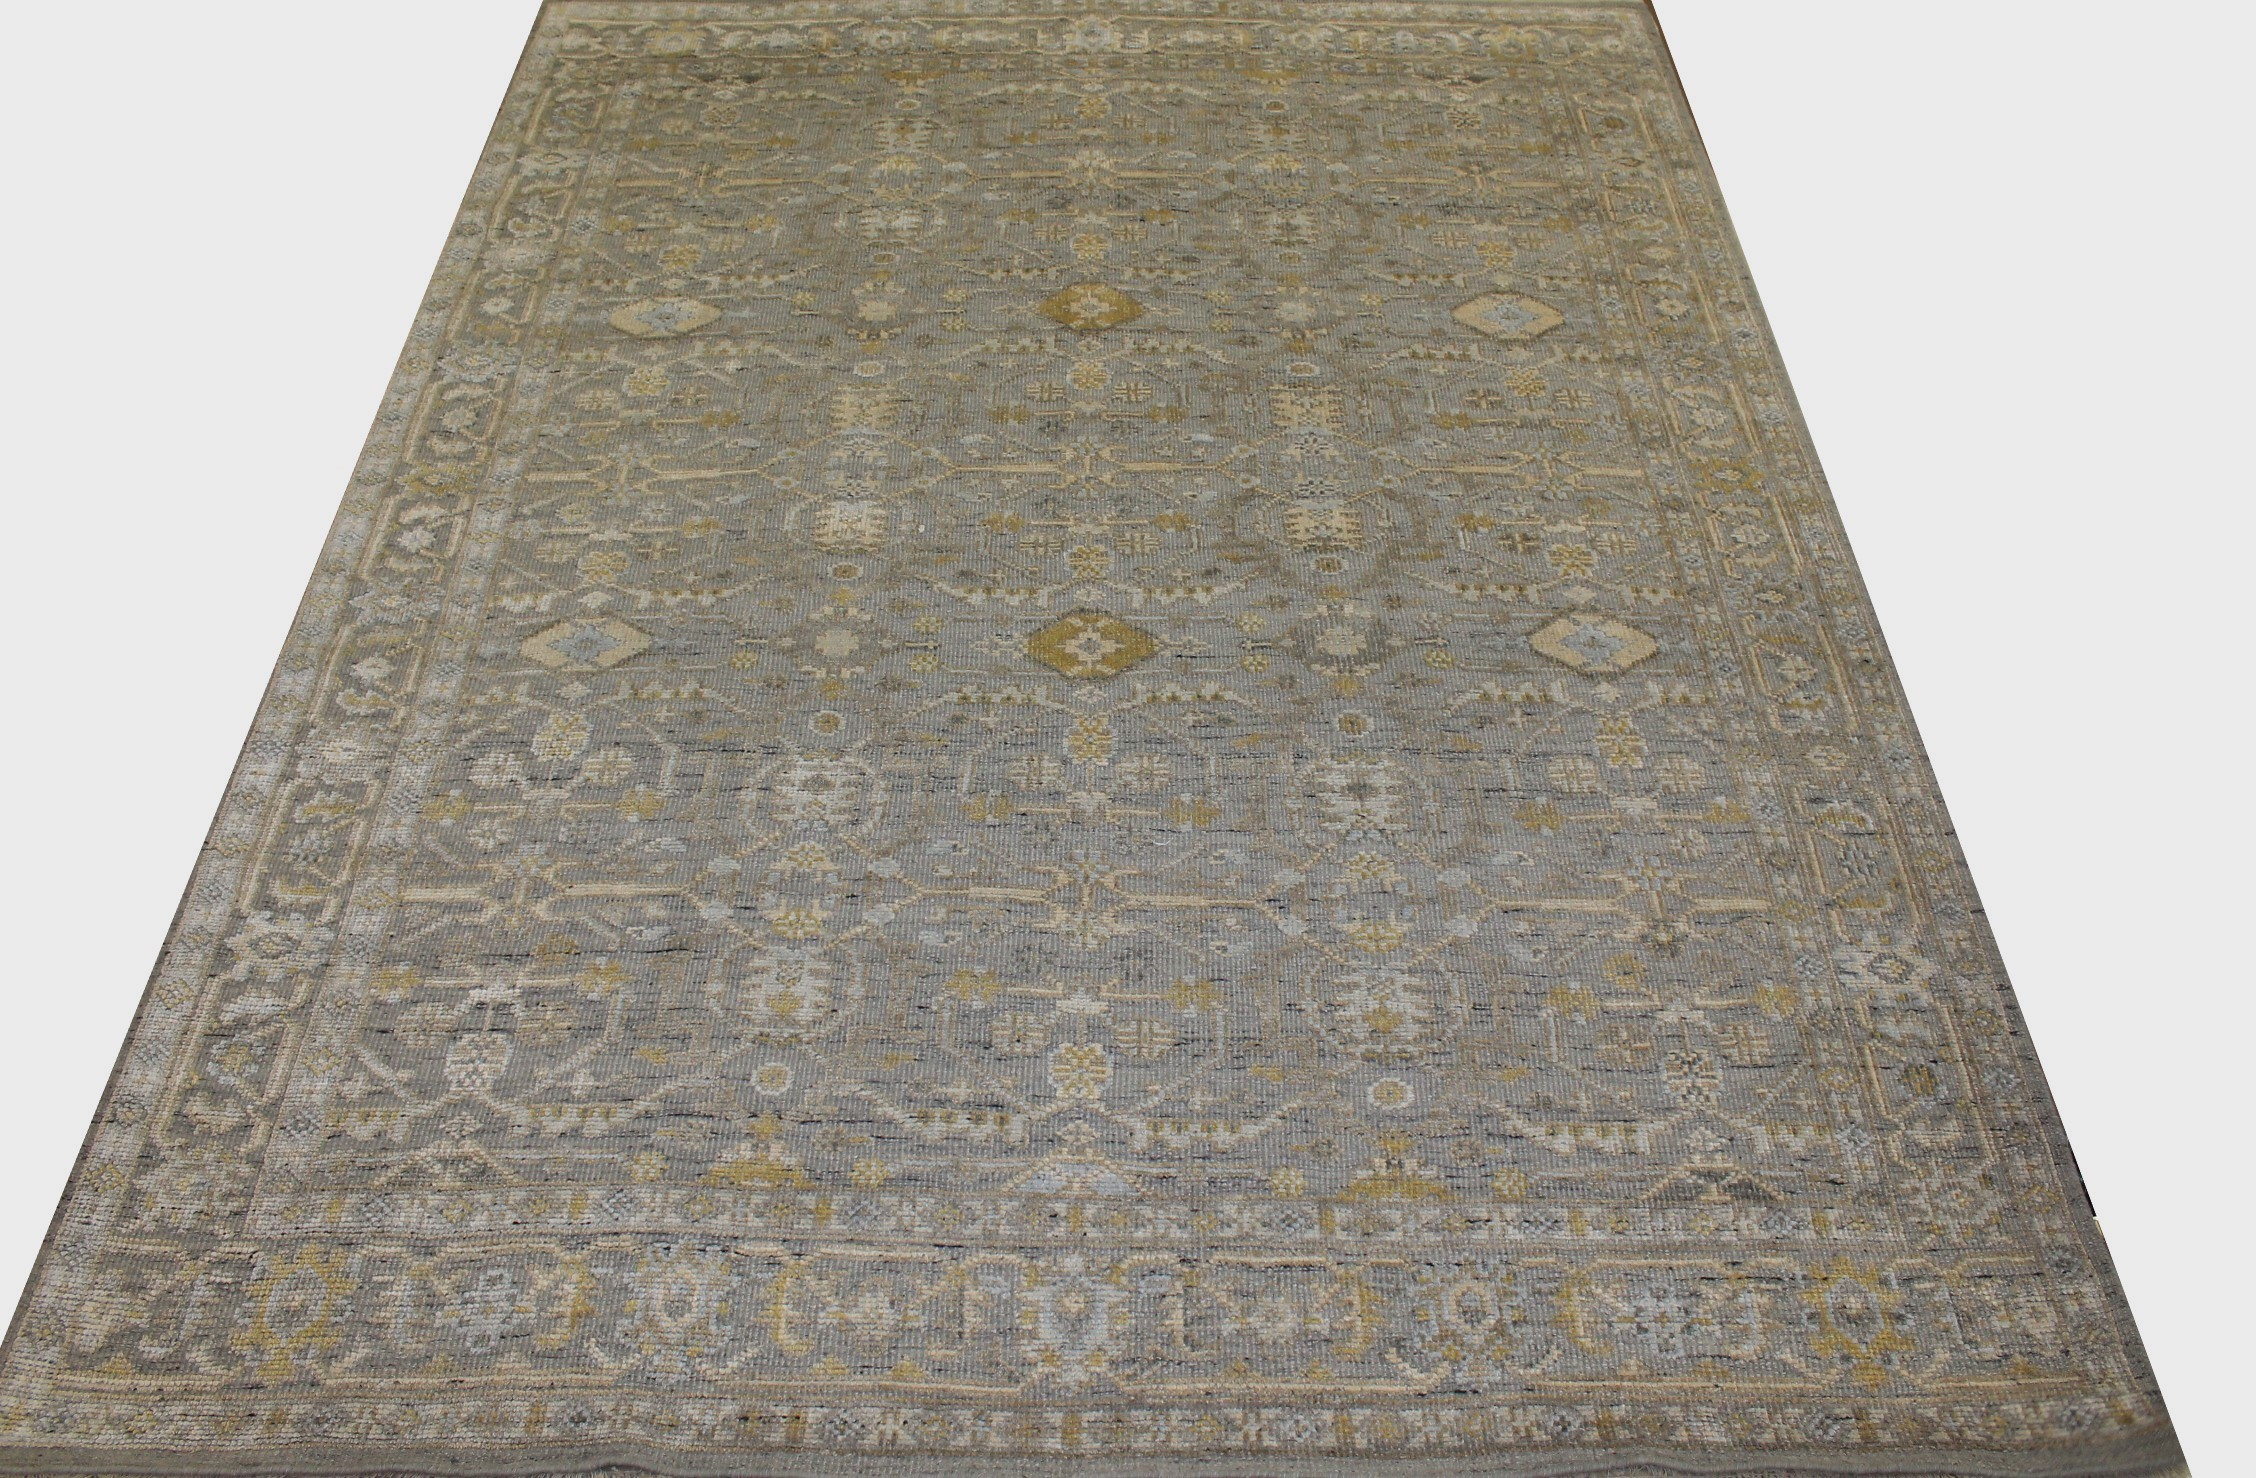 9x12 Oushak Hand Knotted Wool Area Rug - MR024292